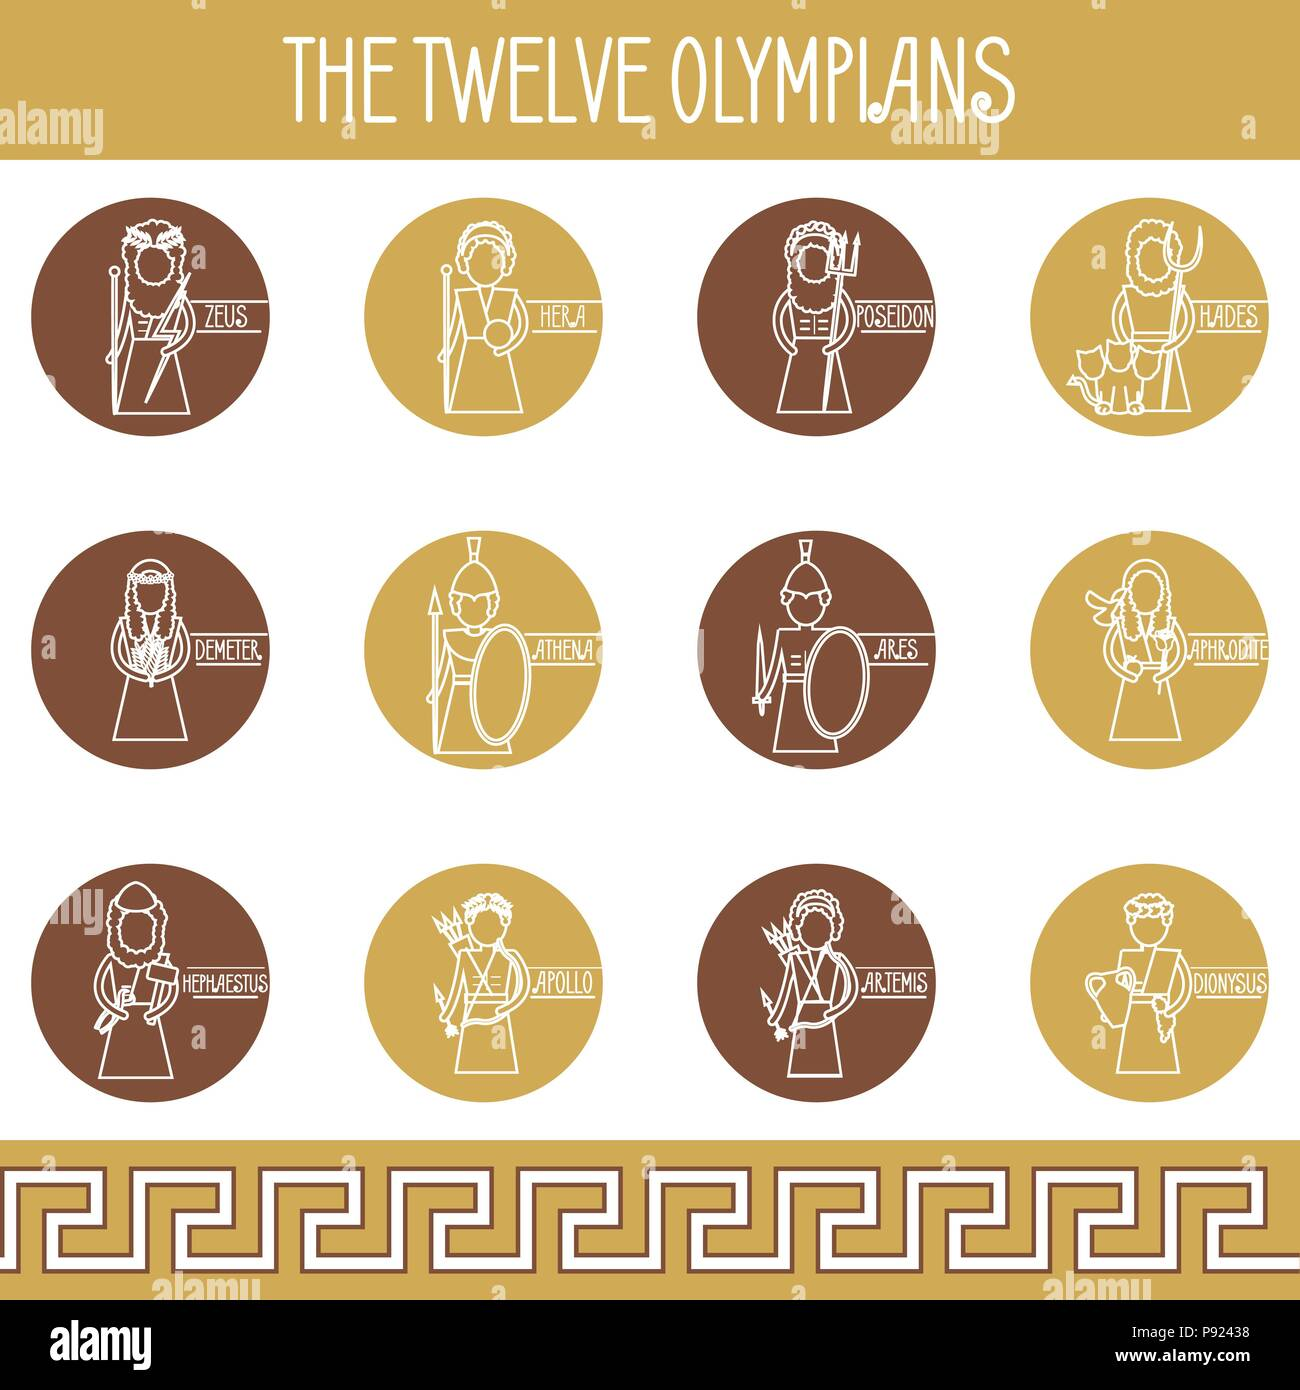 The Twelve Olympians icons set - Stock Vector